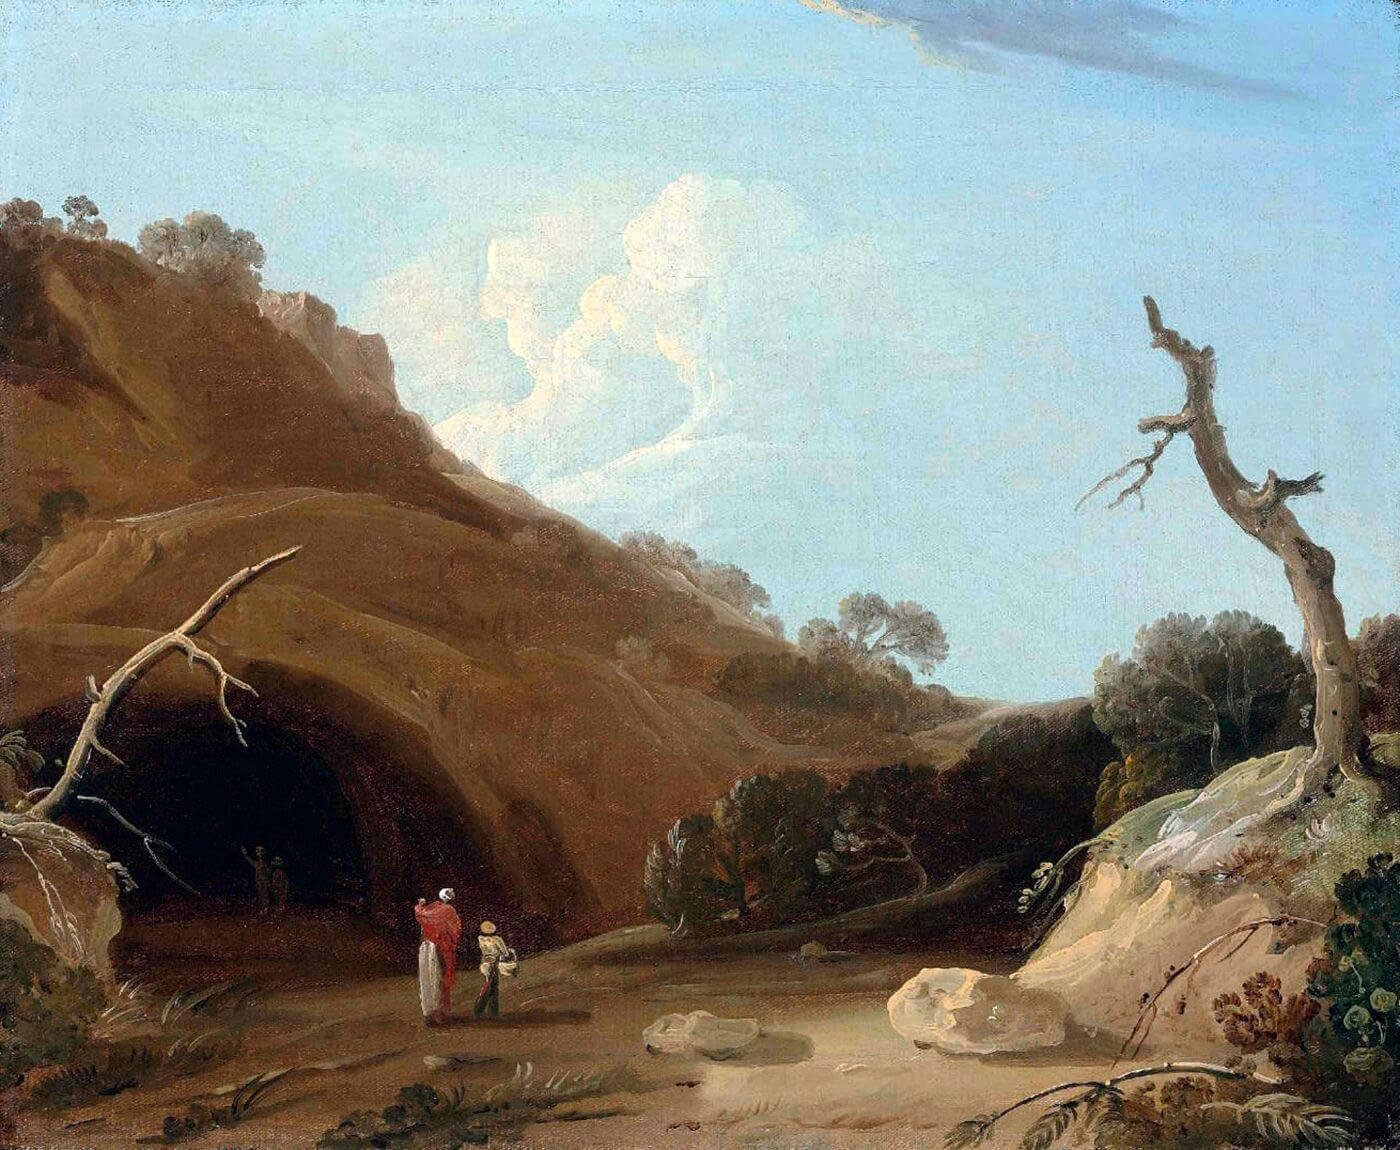 A hilly Indian landscape with figures passing by a cave - William Hodges c 1785 - Vintage Orientalist Painting of India